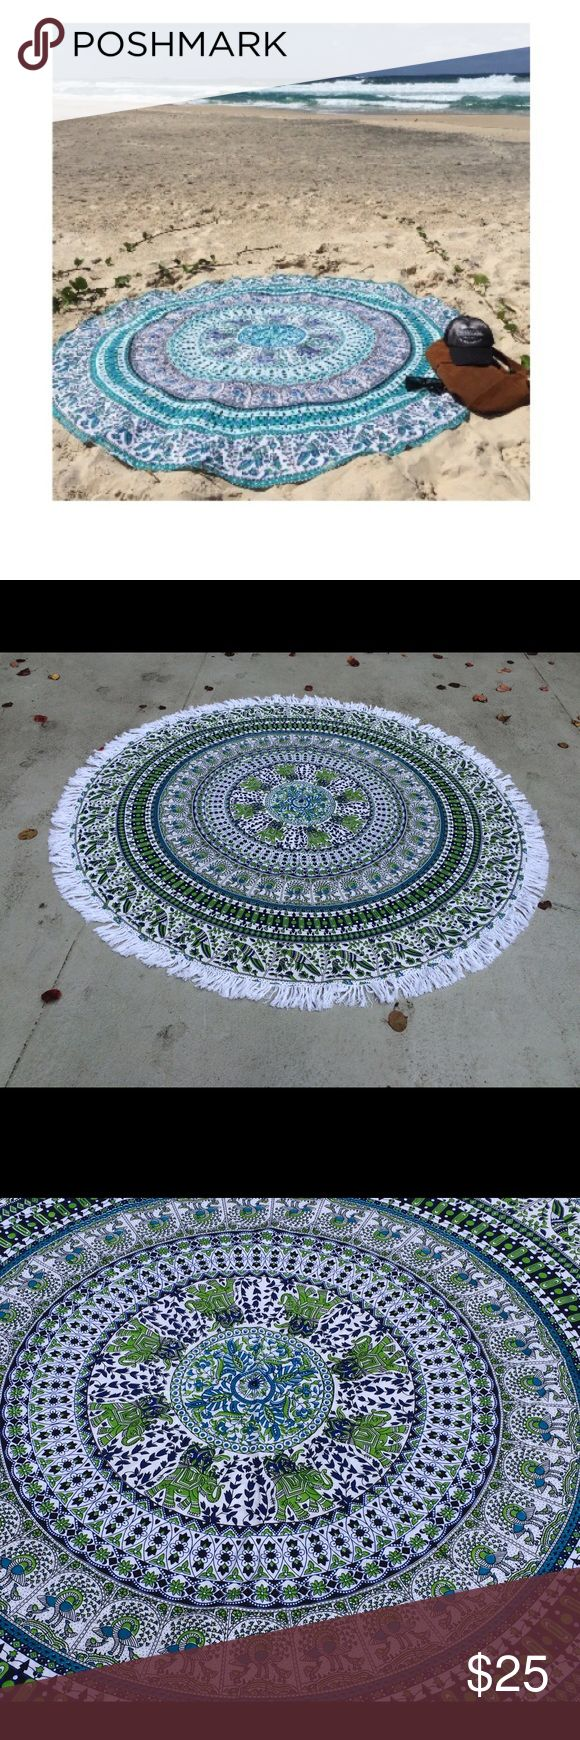 ❤Beach floor spread mandala perfect gift 💥 🎉❤️Follow me on Instagram to get discount! #rhyayfashion. Let me know with your username 😘  Round tapestry handmade with natural dyes.  Usages: floor mat ,yoga mat, picnic spread, couch spread, special occasion gift, birthday gift,  Brand new.  Size: 180Cm (72inch) Diameter  Material: 100% Cotton Wash: Cold hand wash Website. Rhyayfashion.com Other